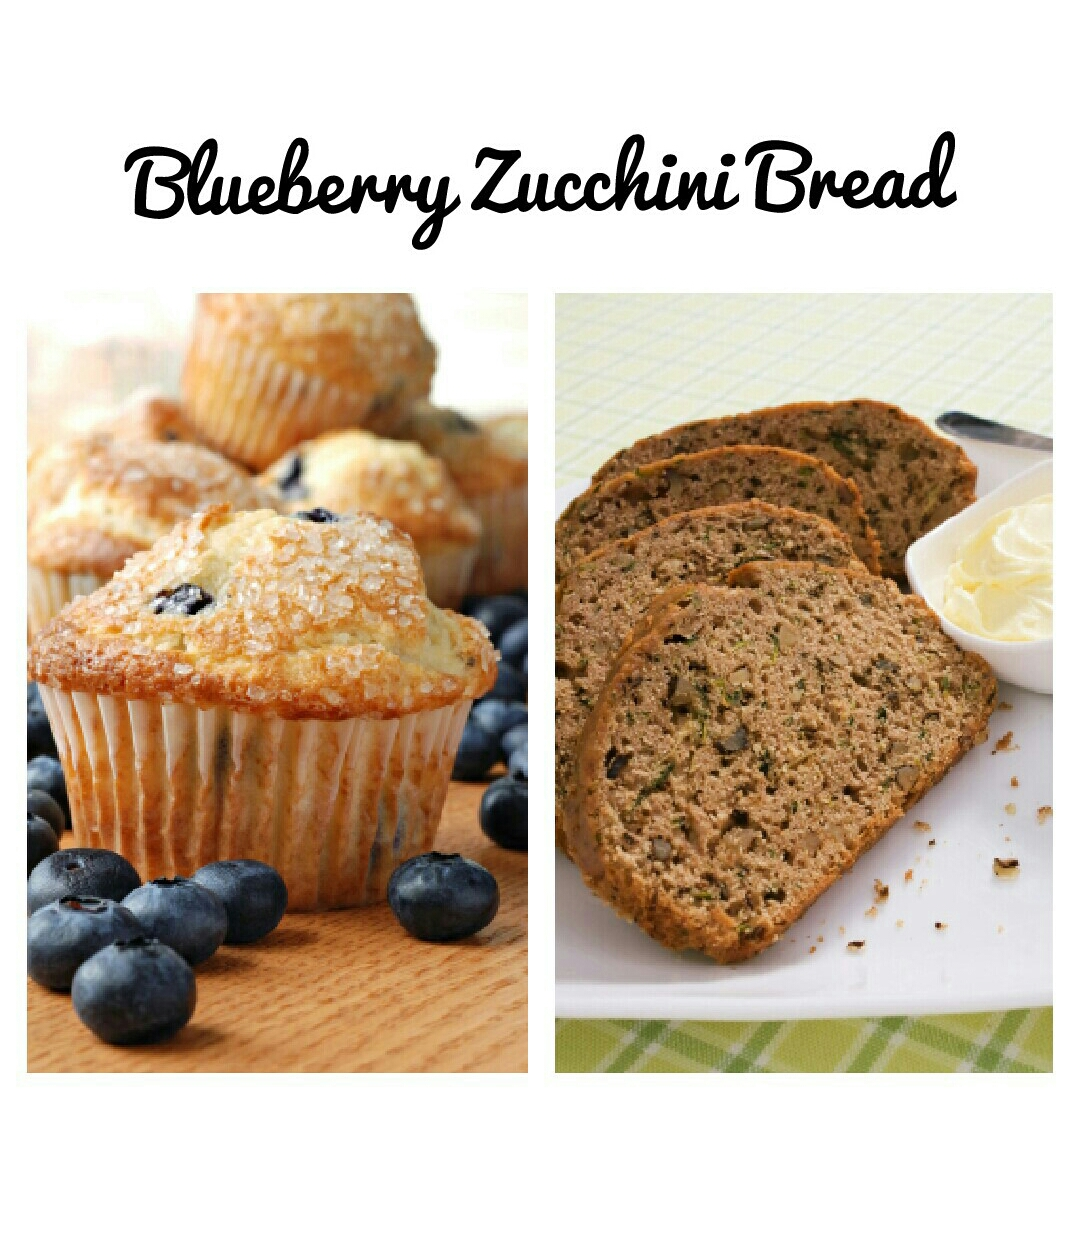 blueberry zucchini bread fragrance